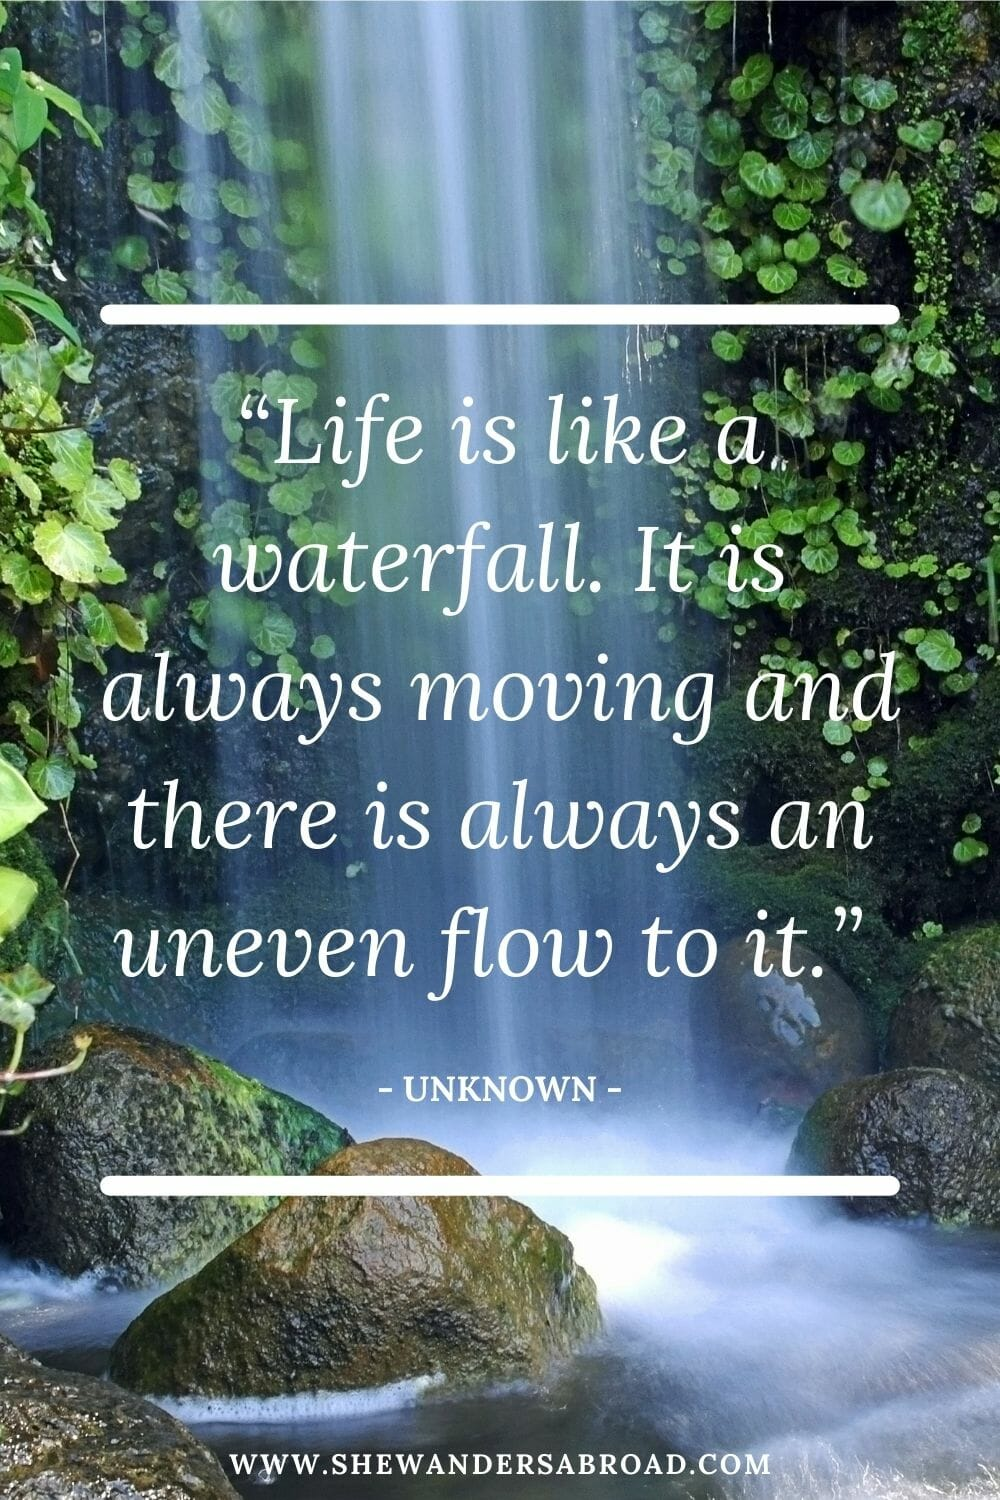 Powerful waterfall quotes for Instagram